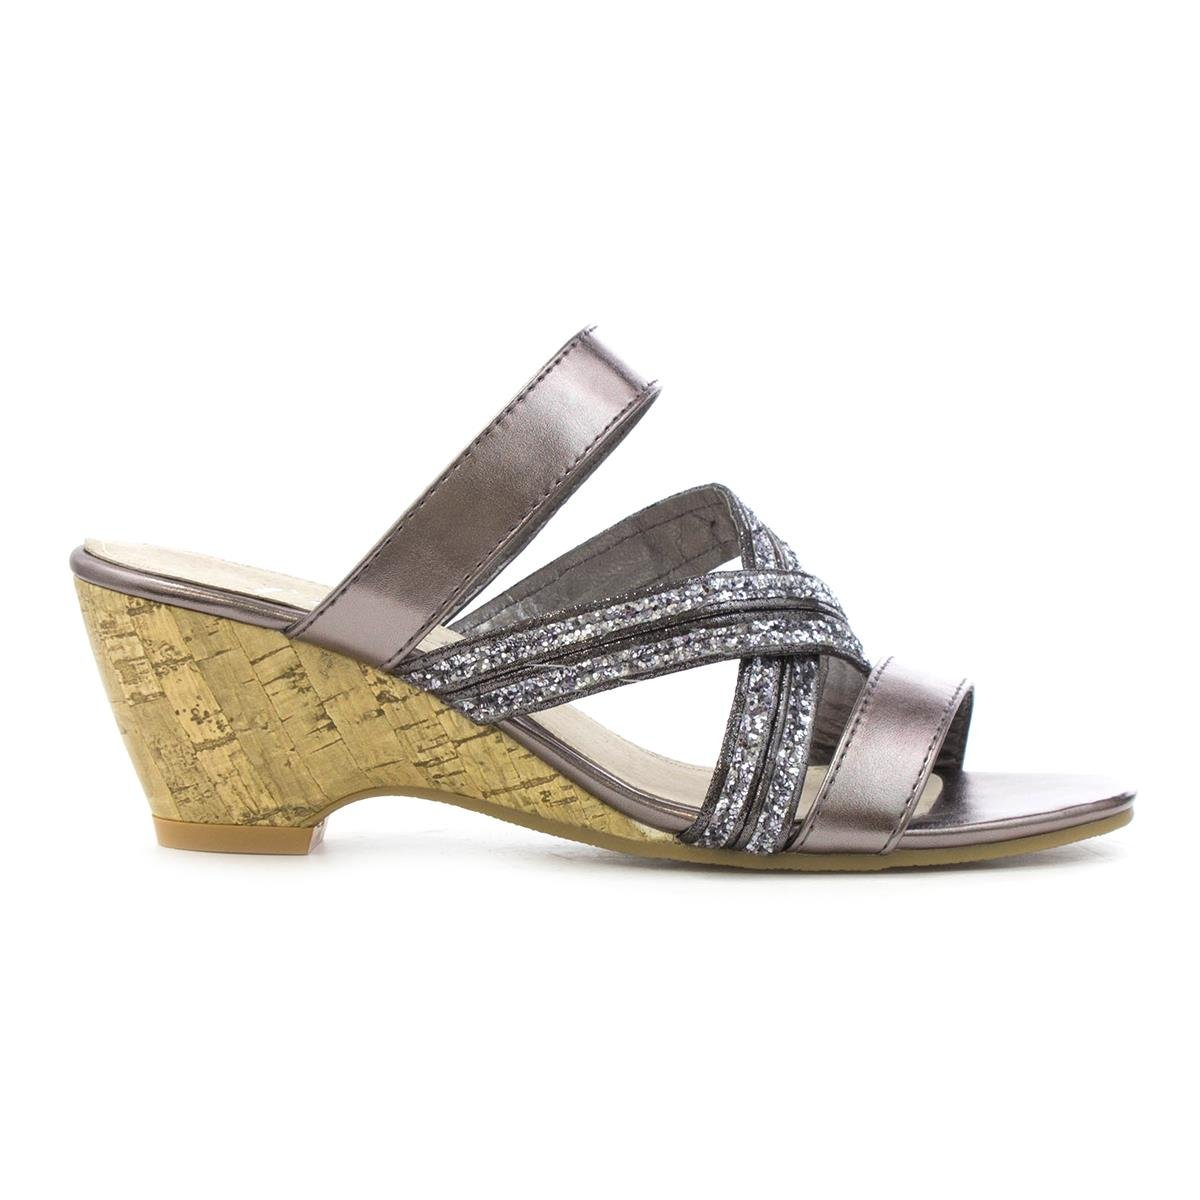 7fd8f4927d3 Lilley Womens Pewter Cross Strap Wedge Sandal  Amazon.co.uk  Shoes   Bags